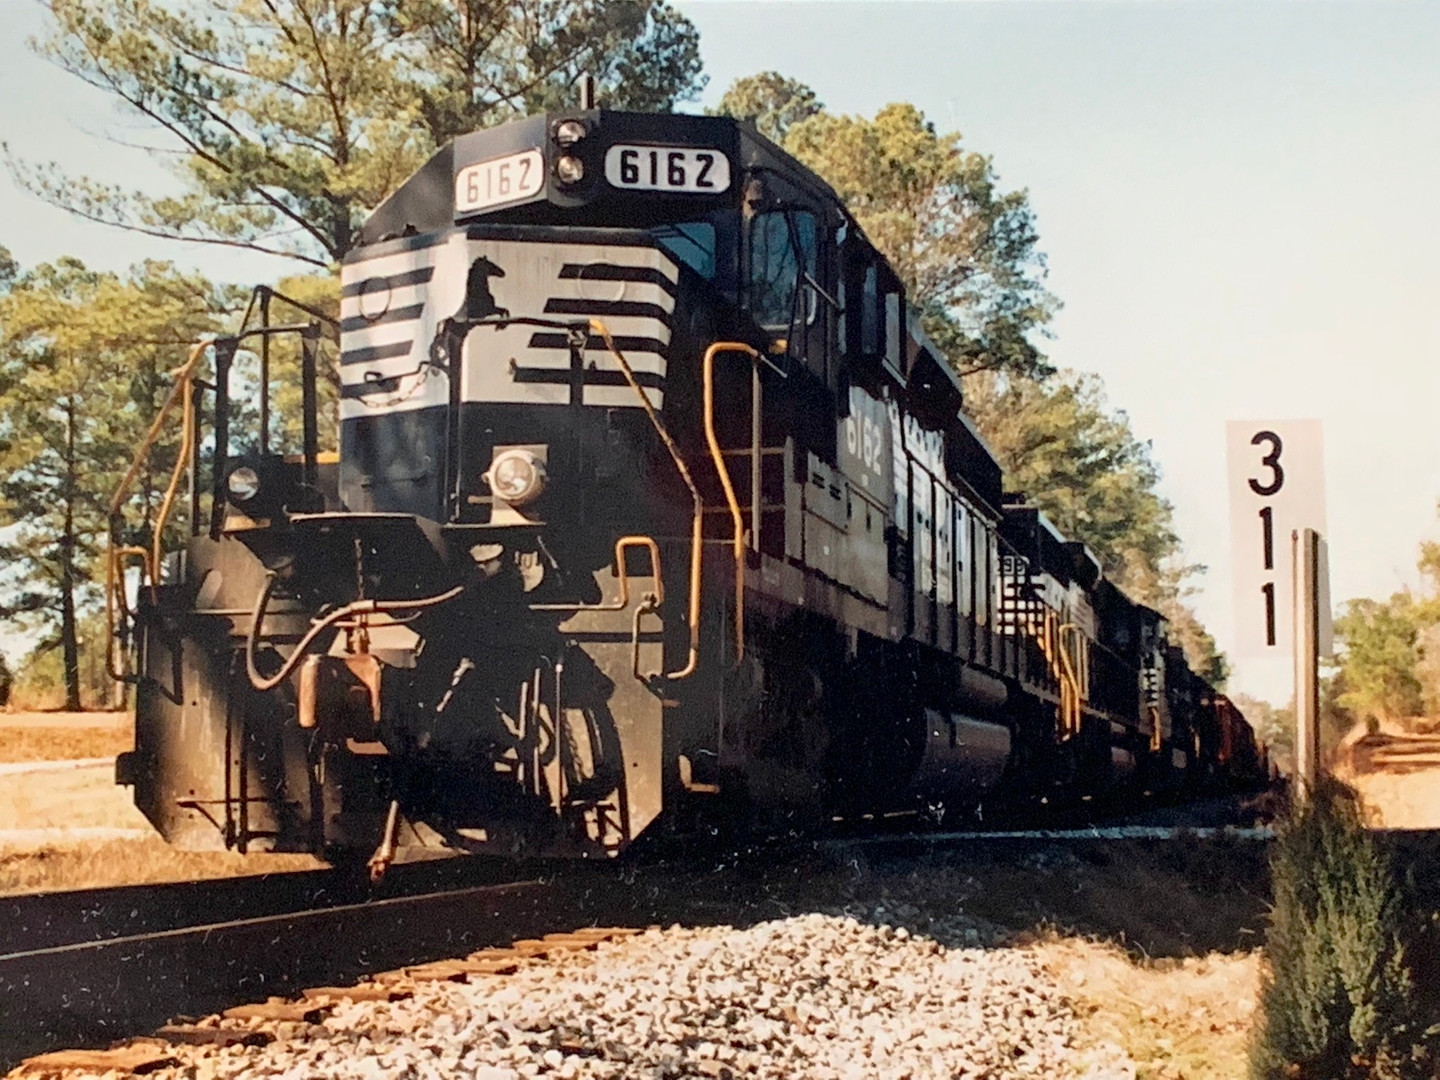 6162 In service in the 1990s